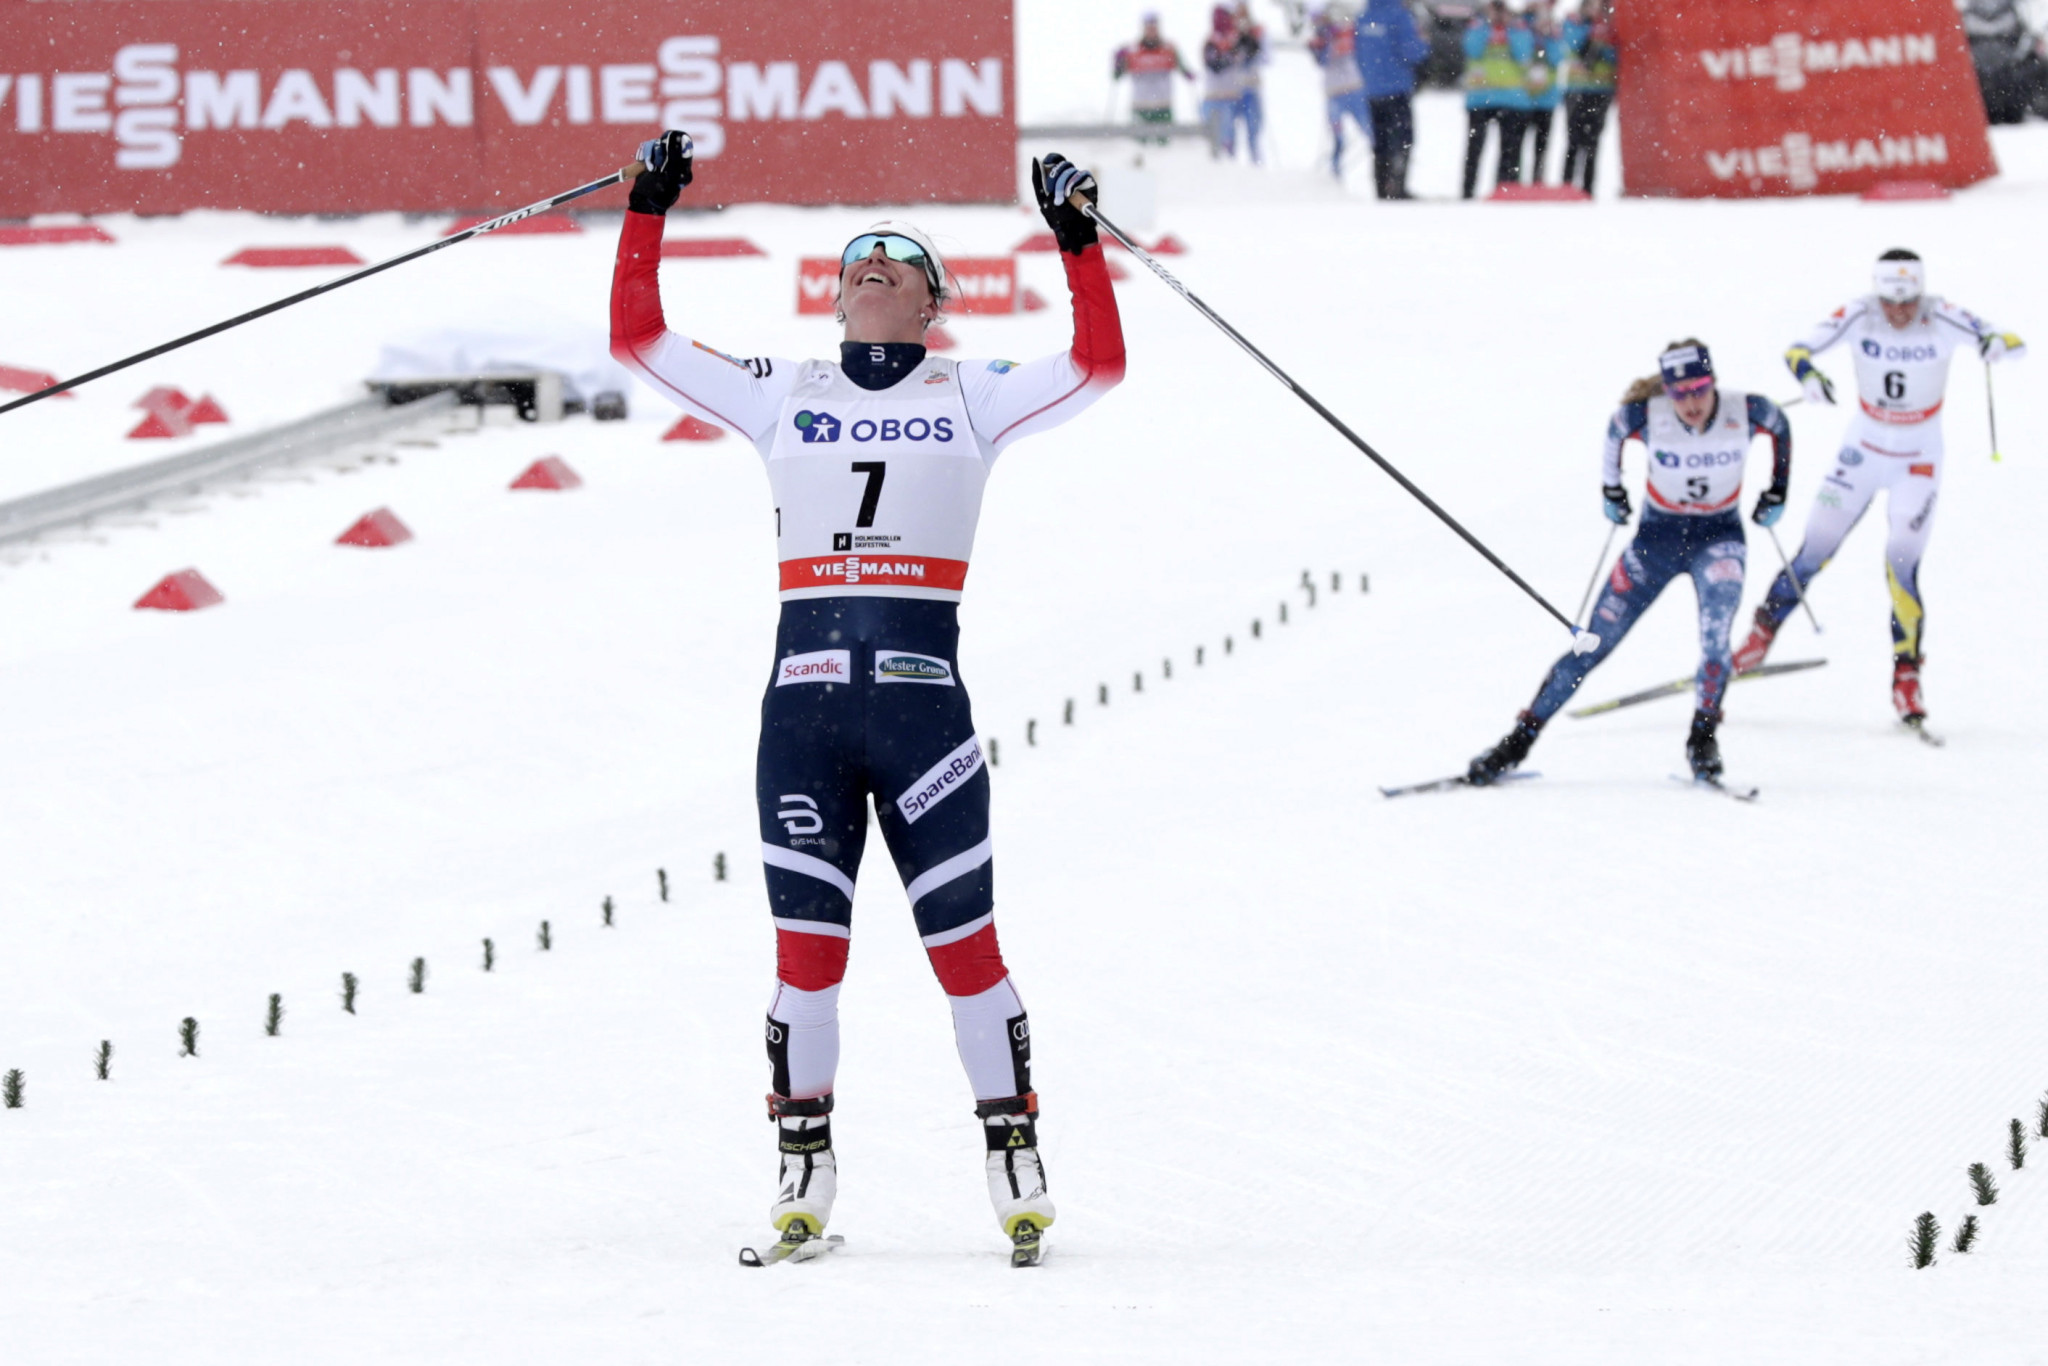 Bjørgen clinches record seventh success at FIS Cross-Country World Cup in Oslo